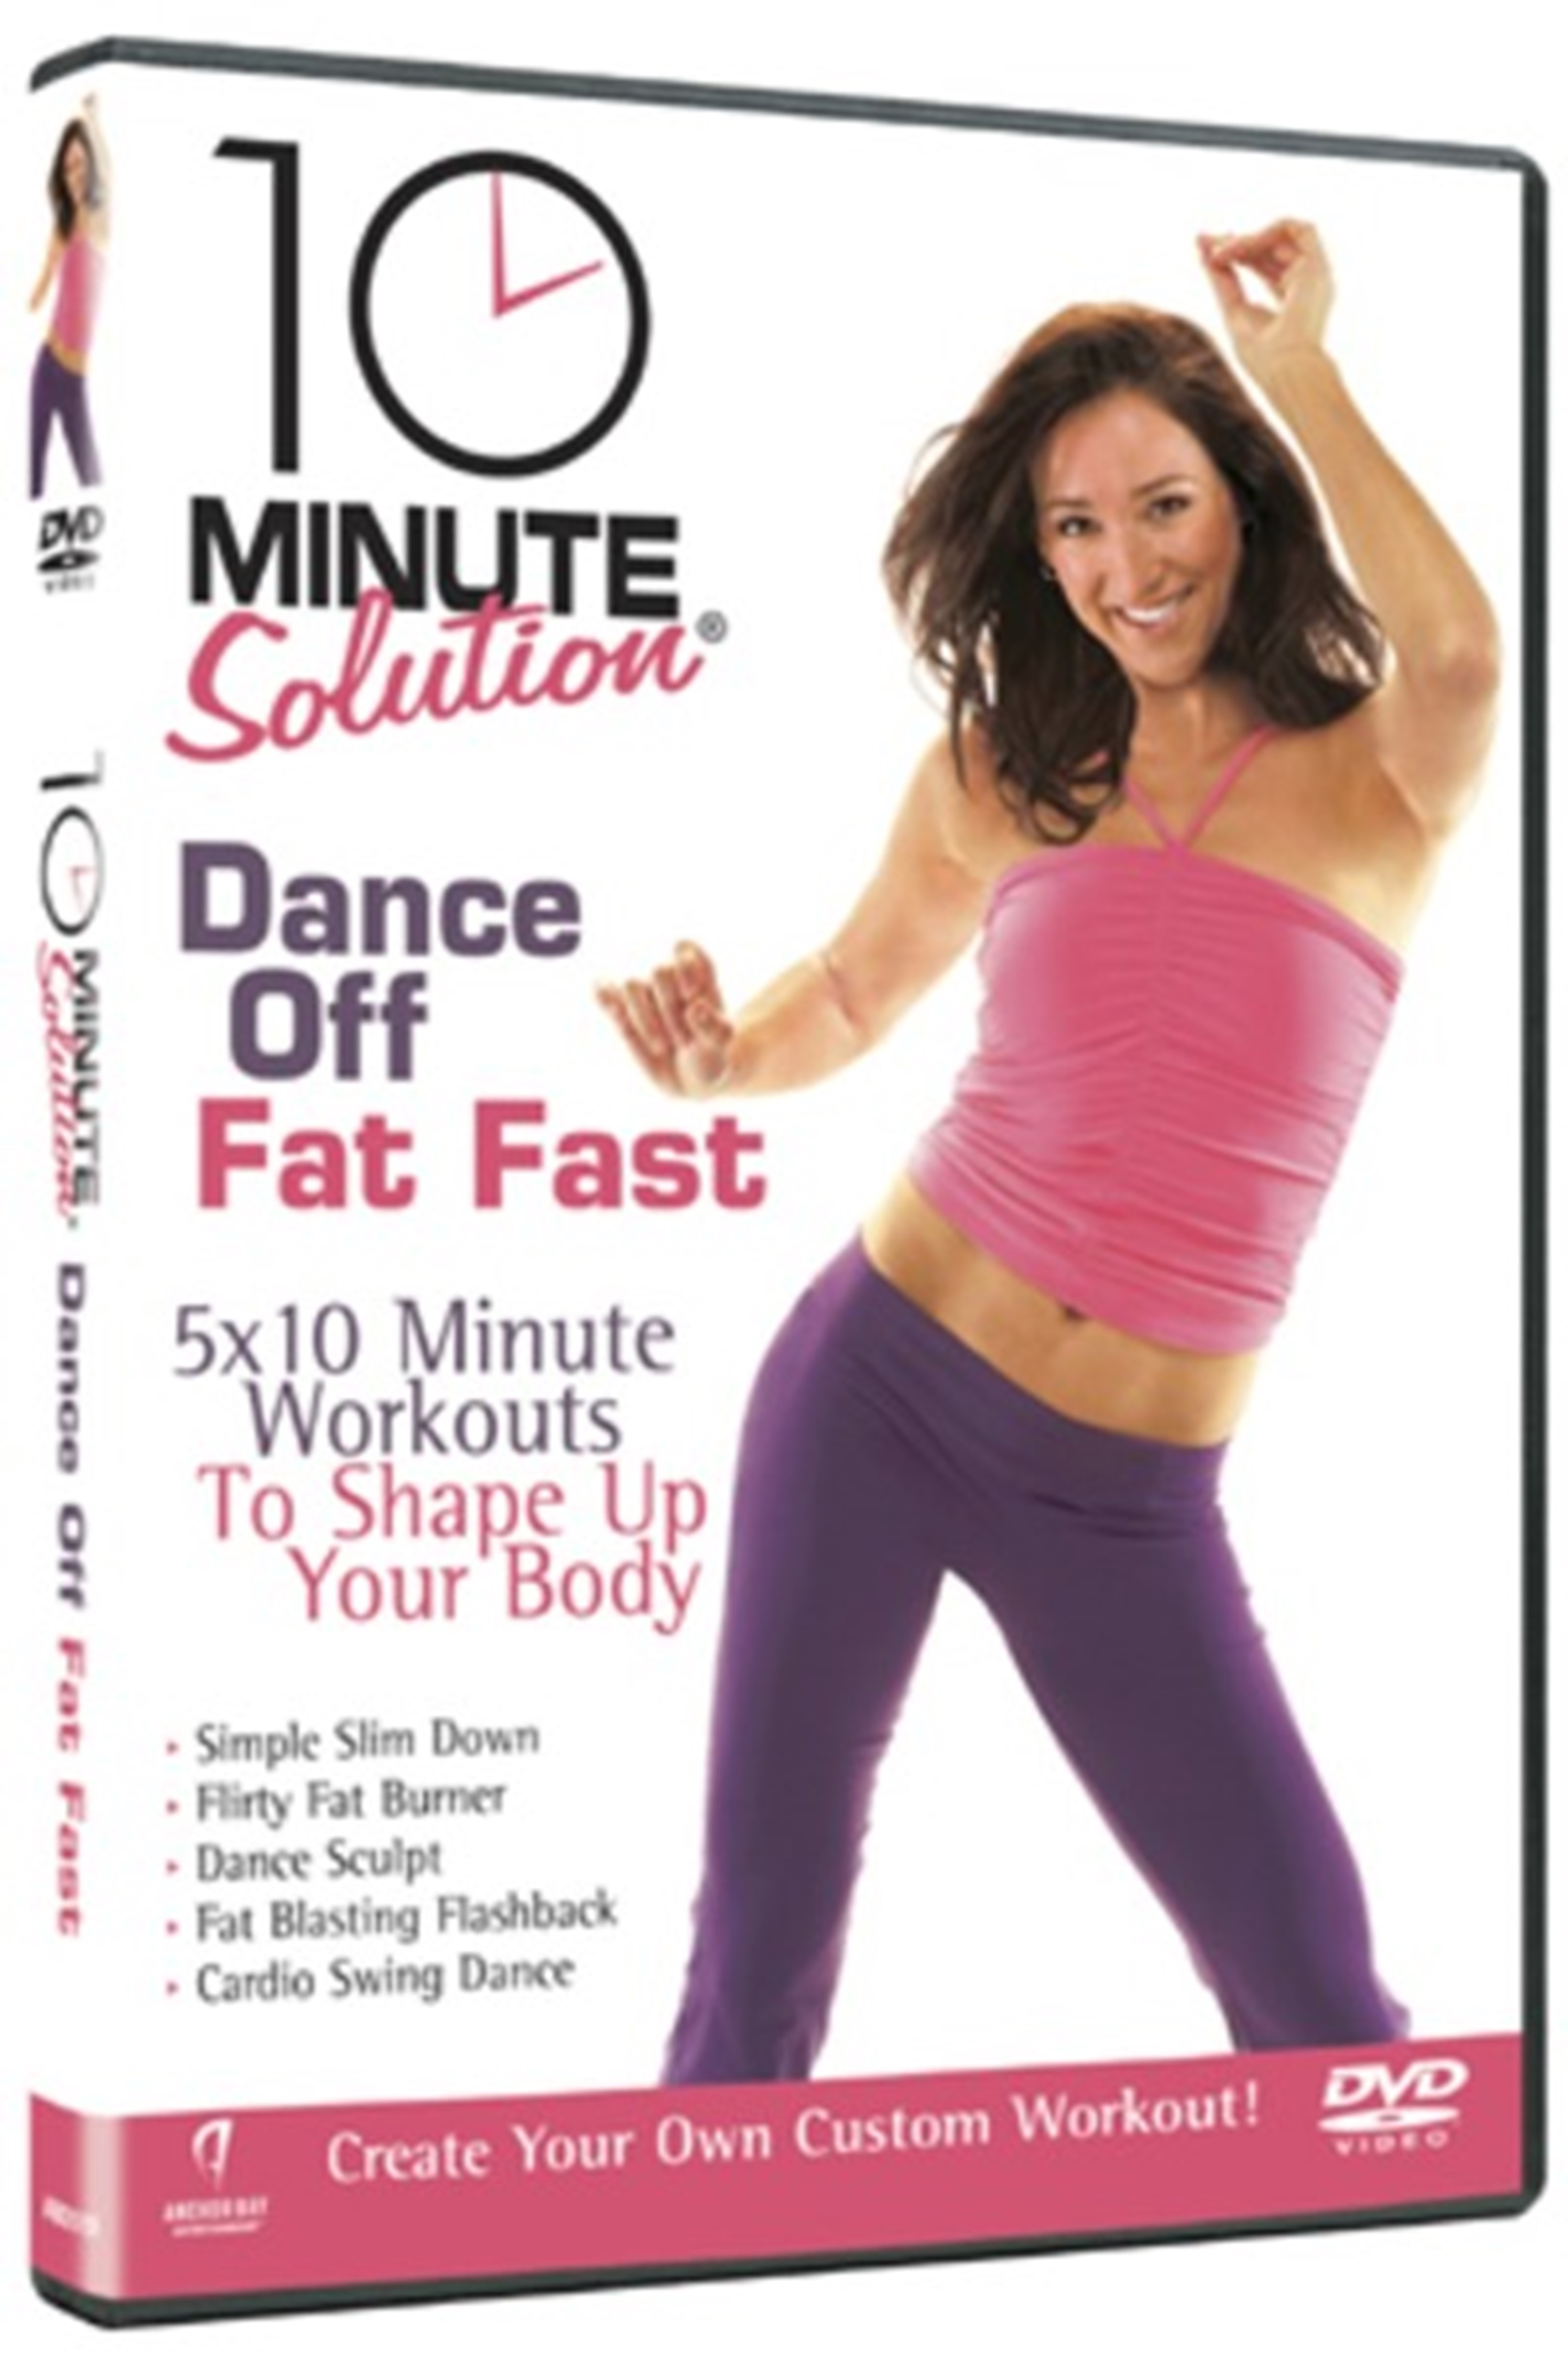 10 Minute Solution: Dance Off Fat Fast - 1